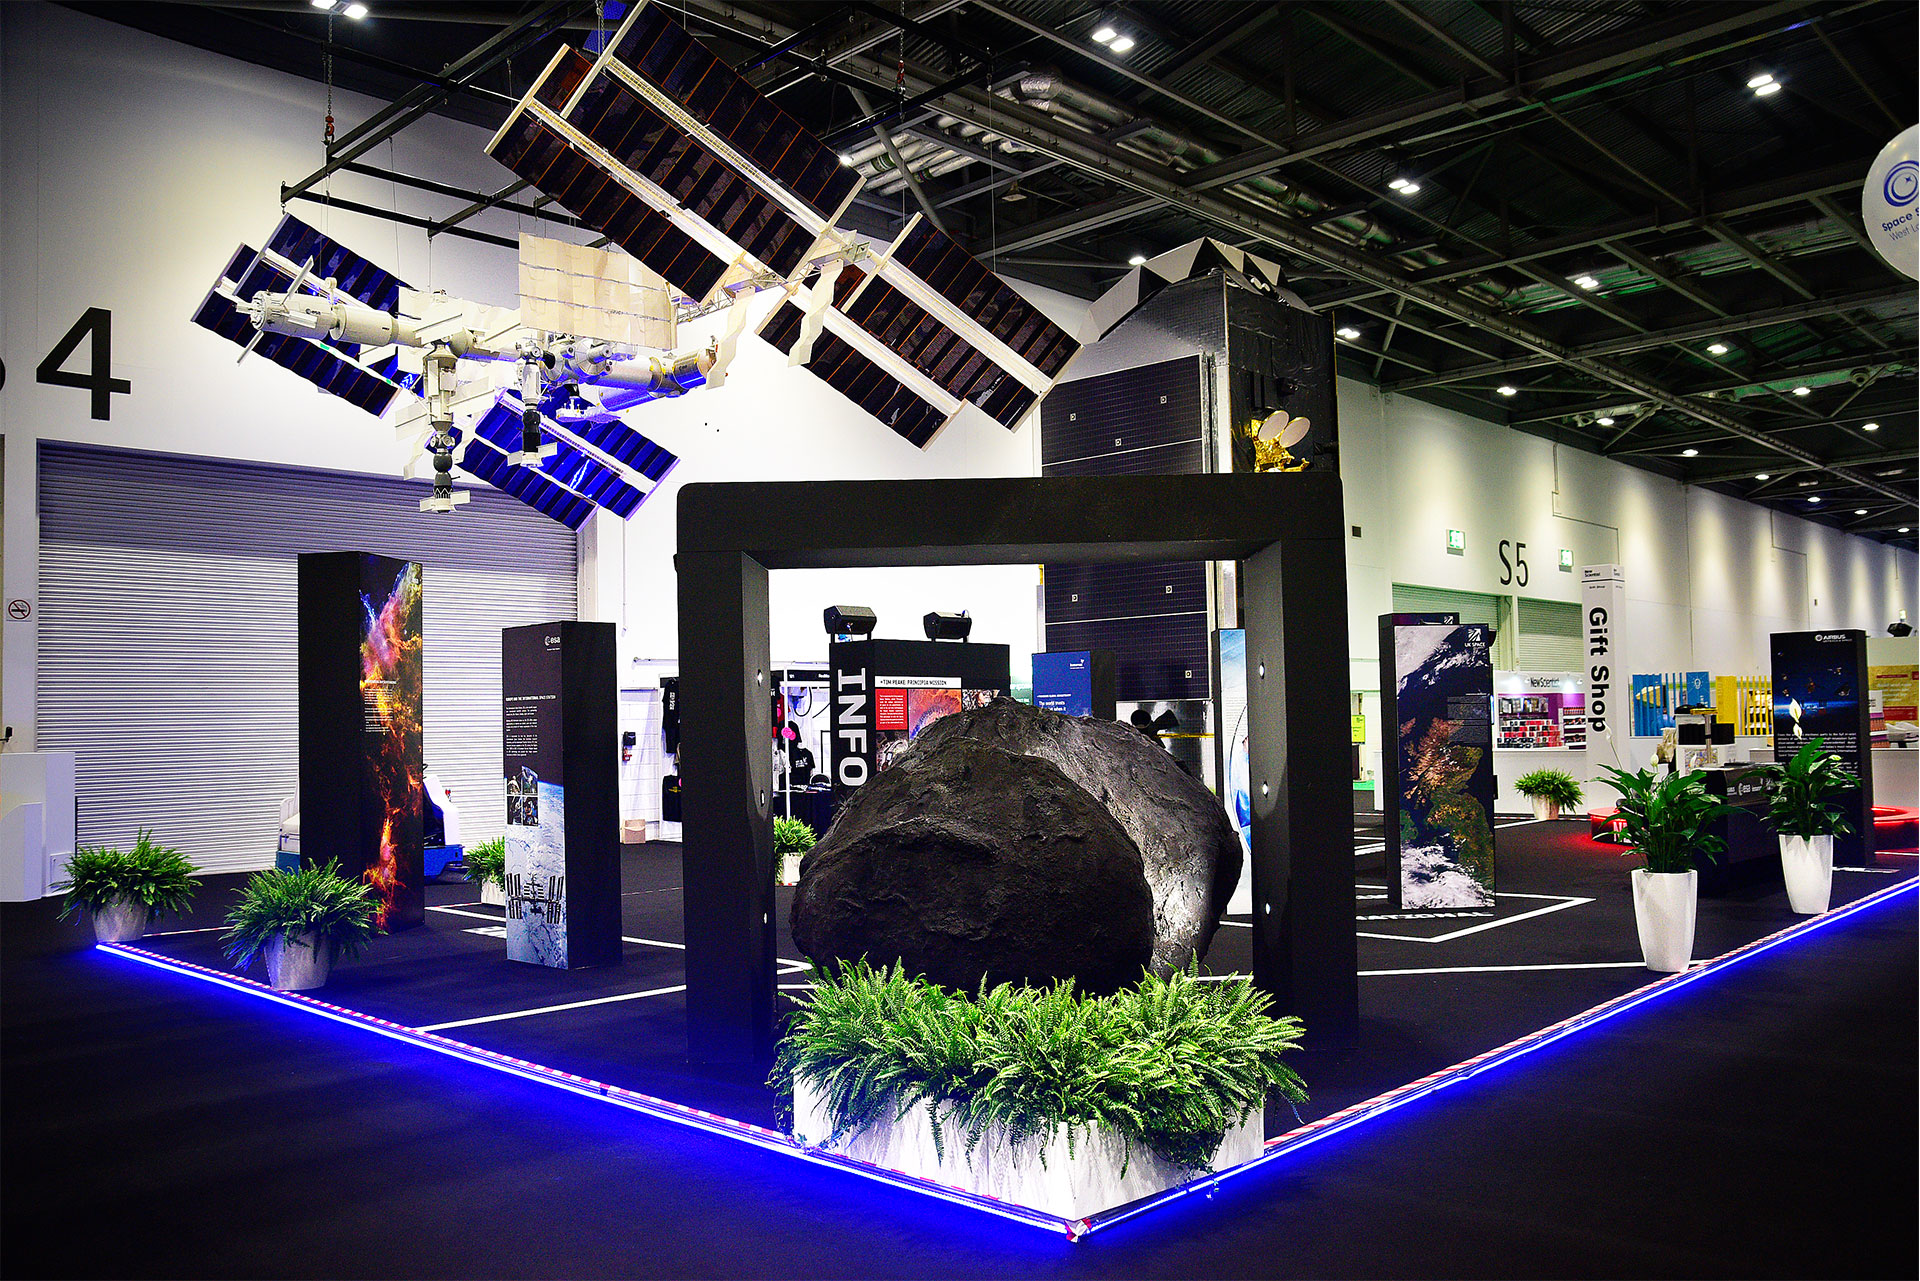 ESA Exhibition Stand 2016, Exhibition Stand Design and Build by Ouno Creative, Farnborough.